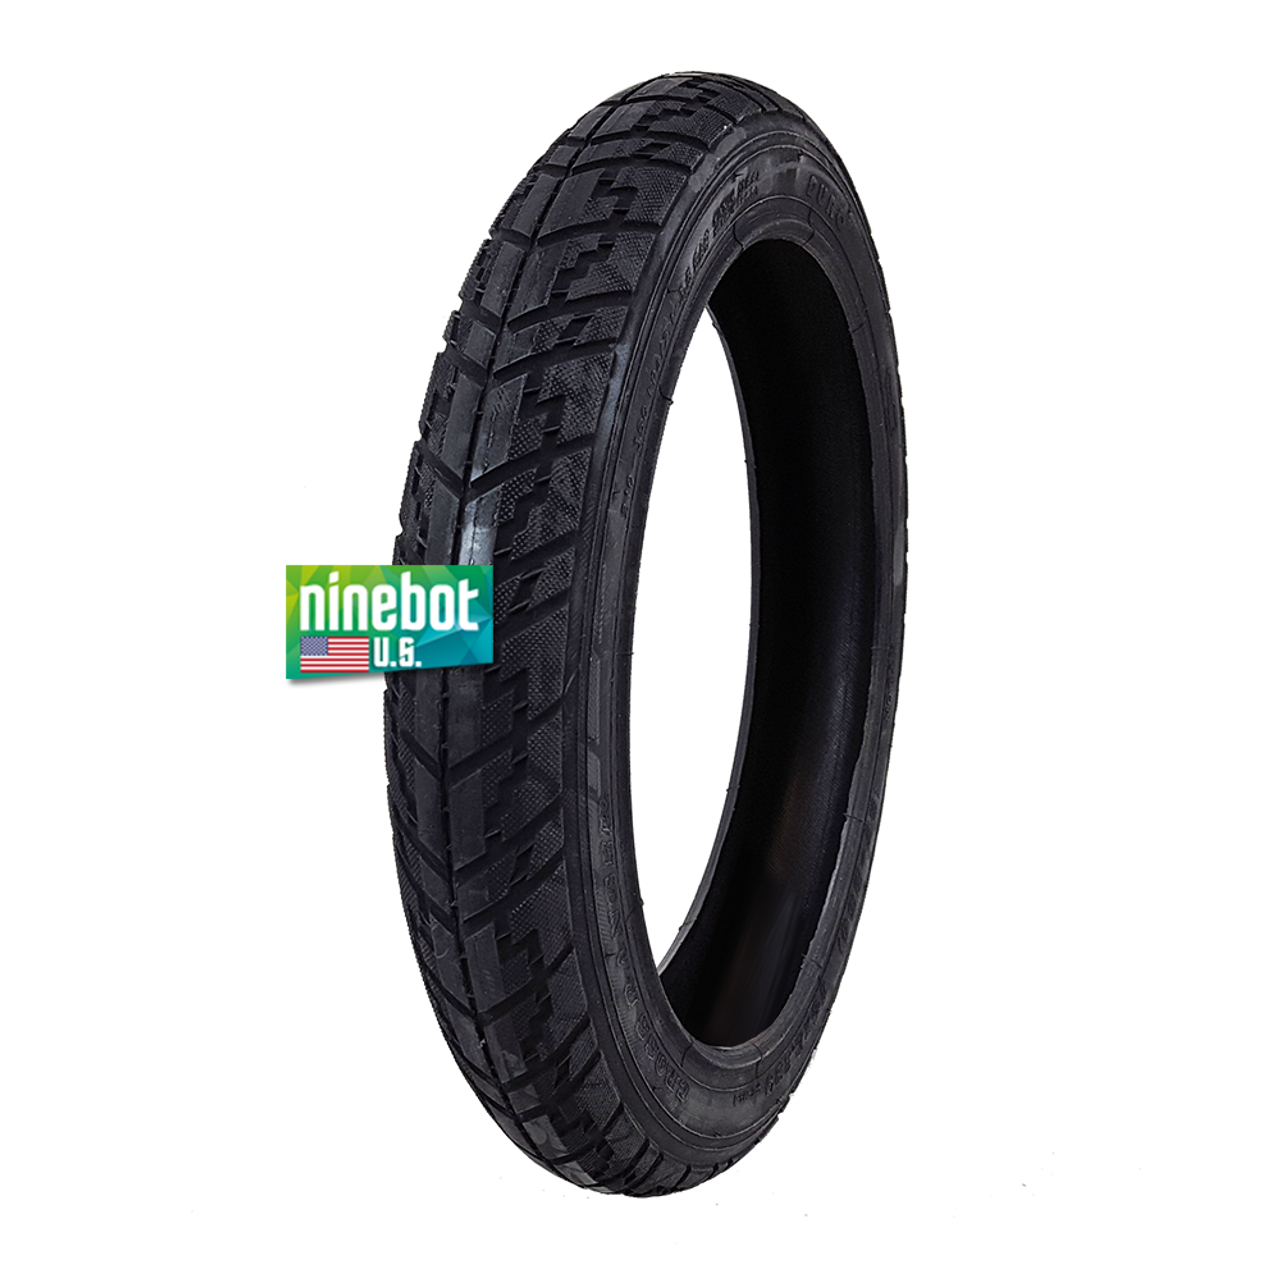 Ninebot by Segway One S1 Tire